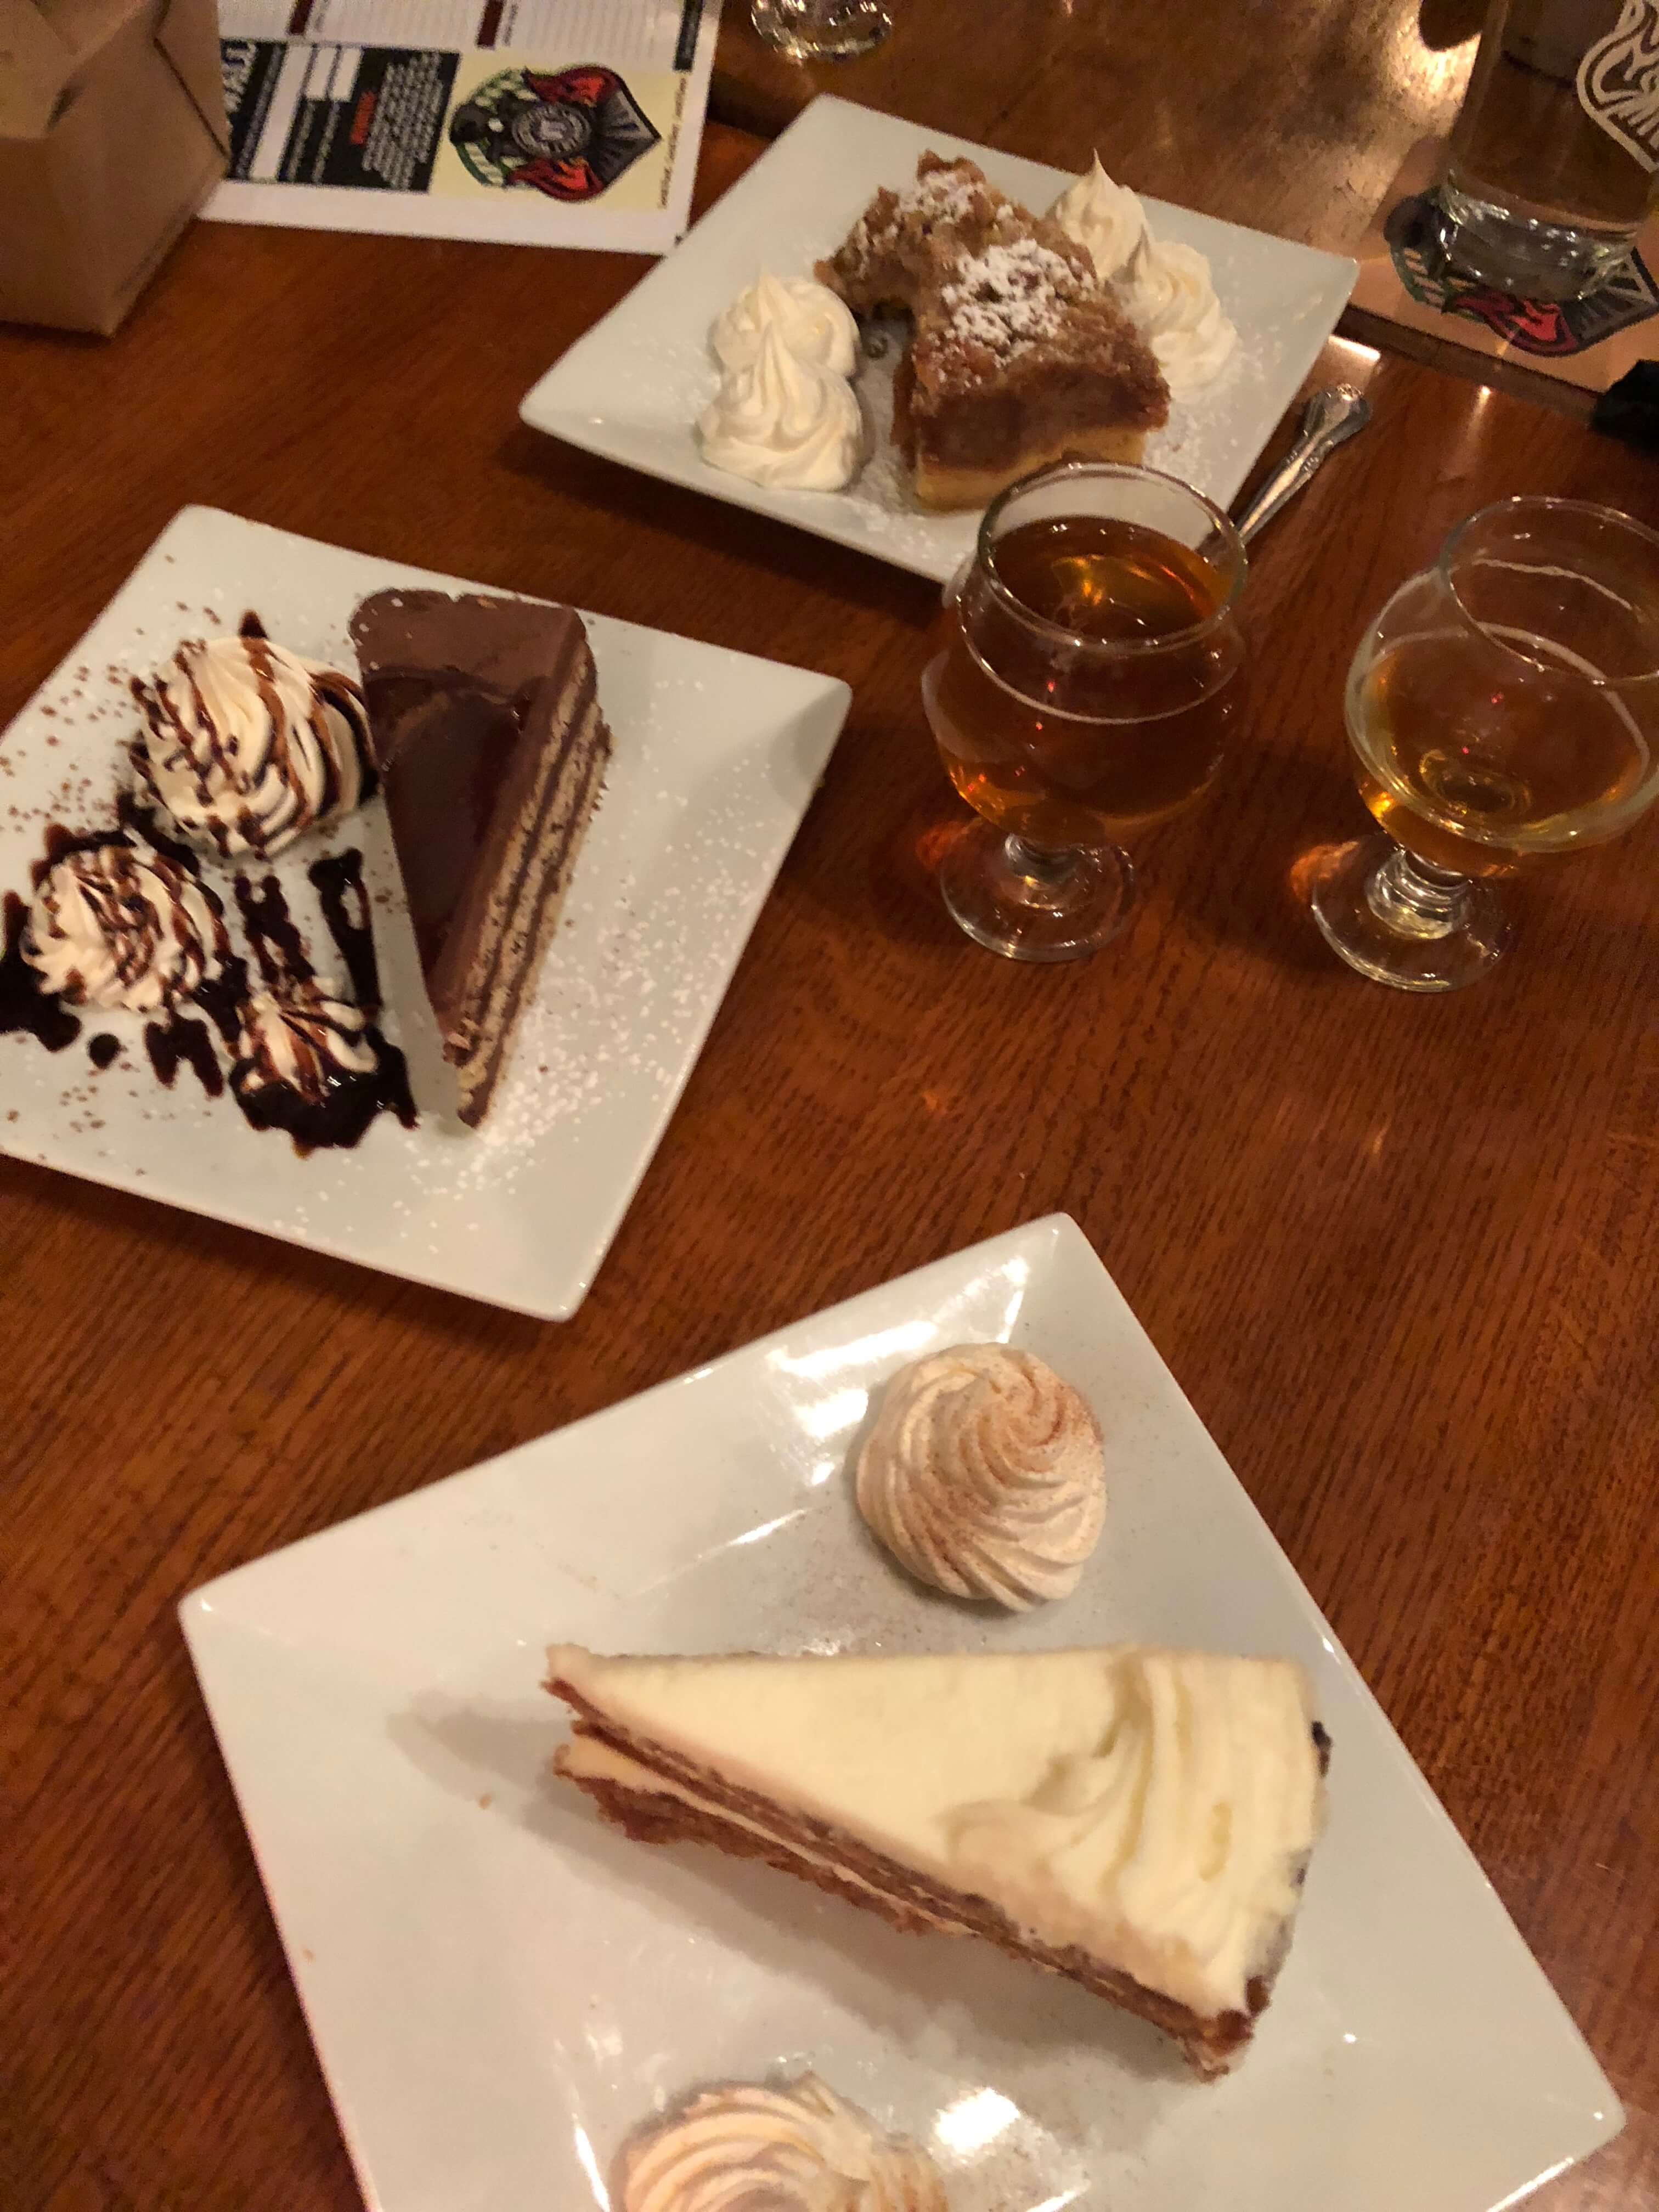 whetson station desserts to try